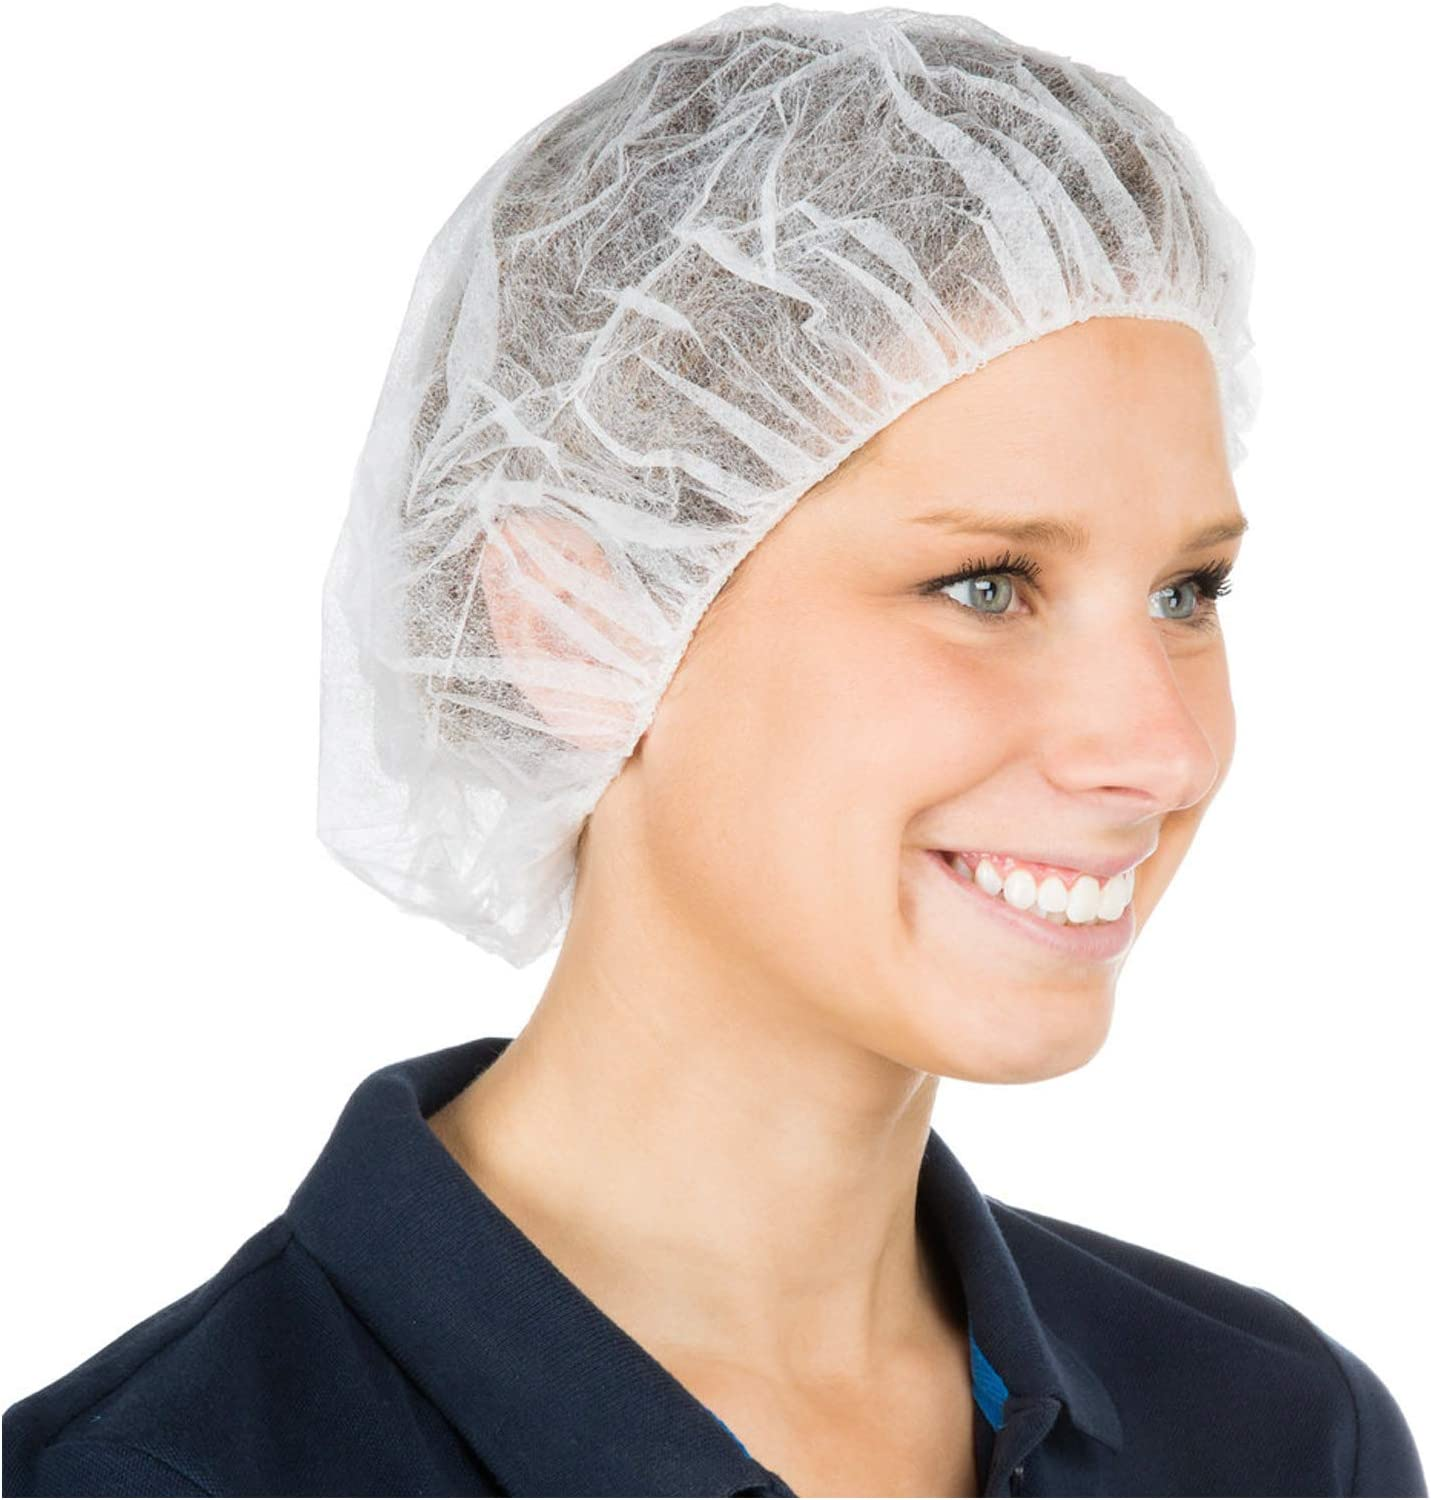 Cleaing Disposable Bouffant Cap 24inch 100 Pack White Hair Net